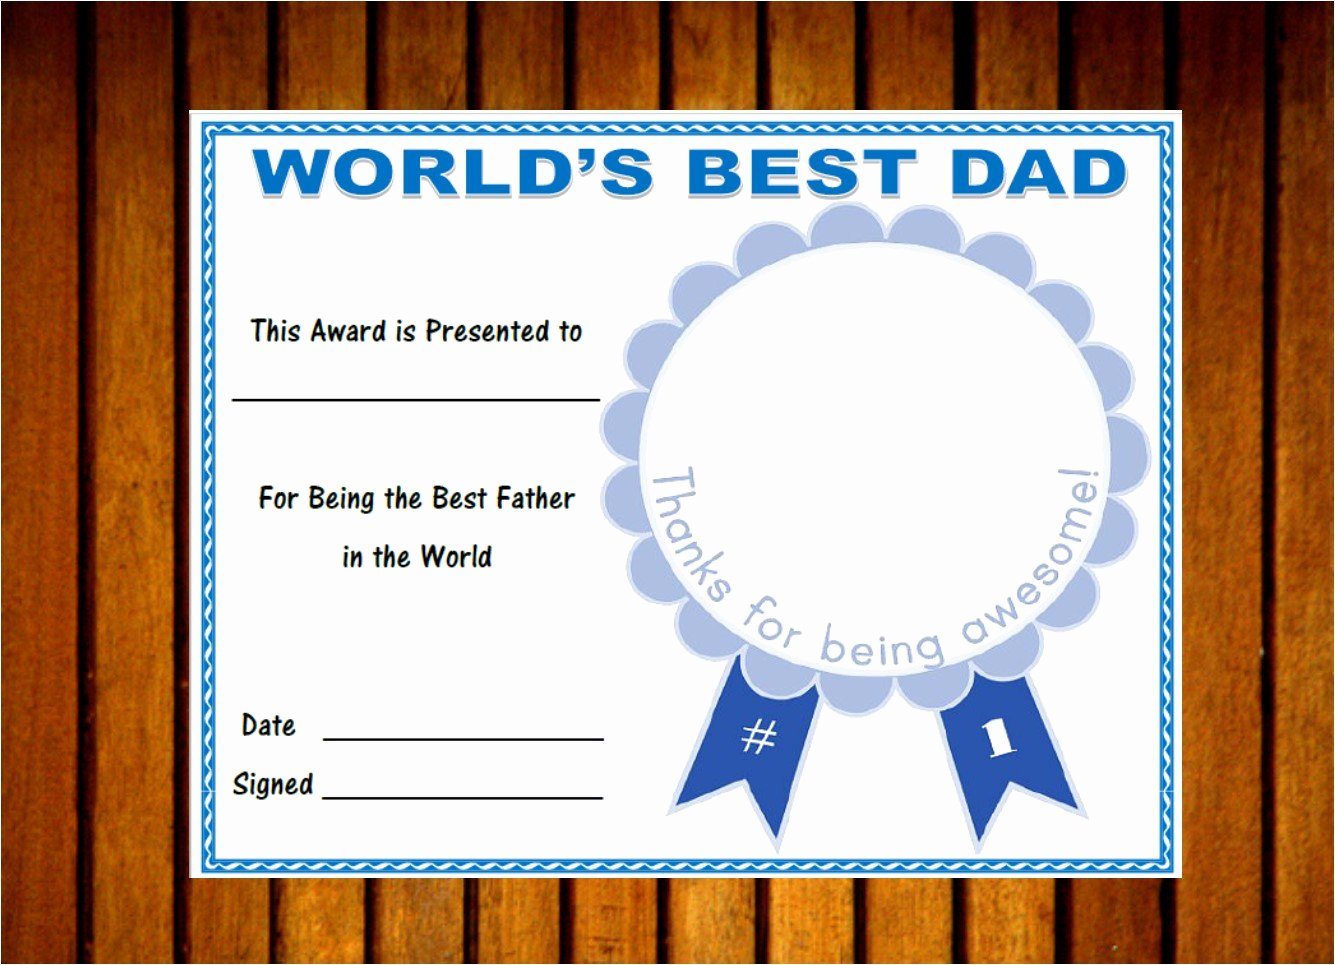 Best Dad Certificate Free Printable New Printable World S Best Dad Award Father S